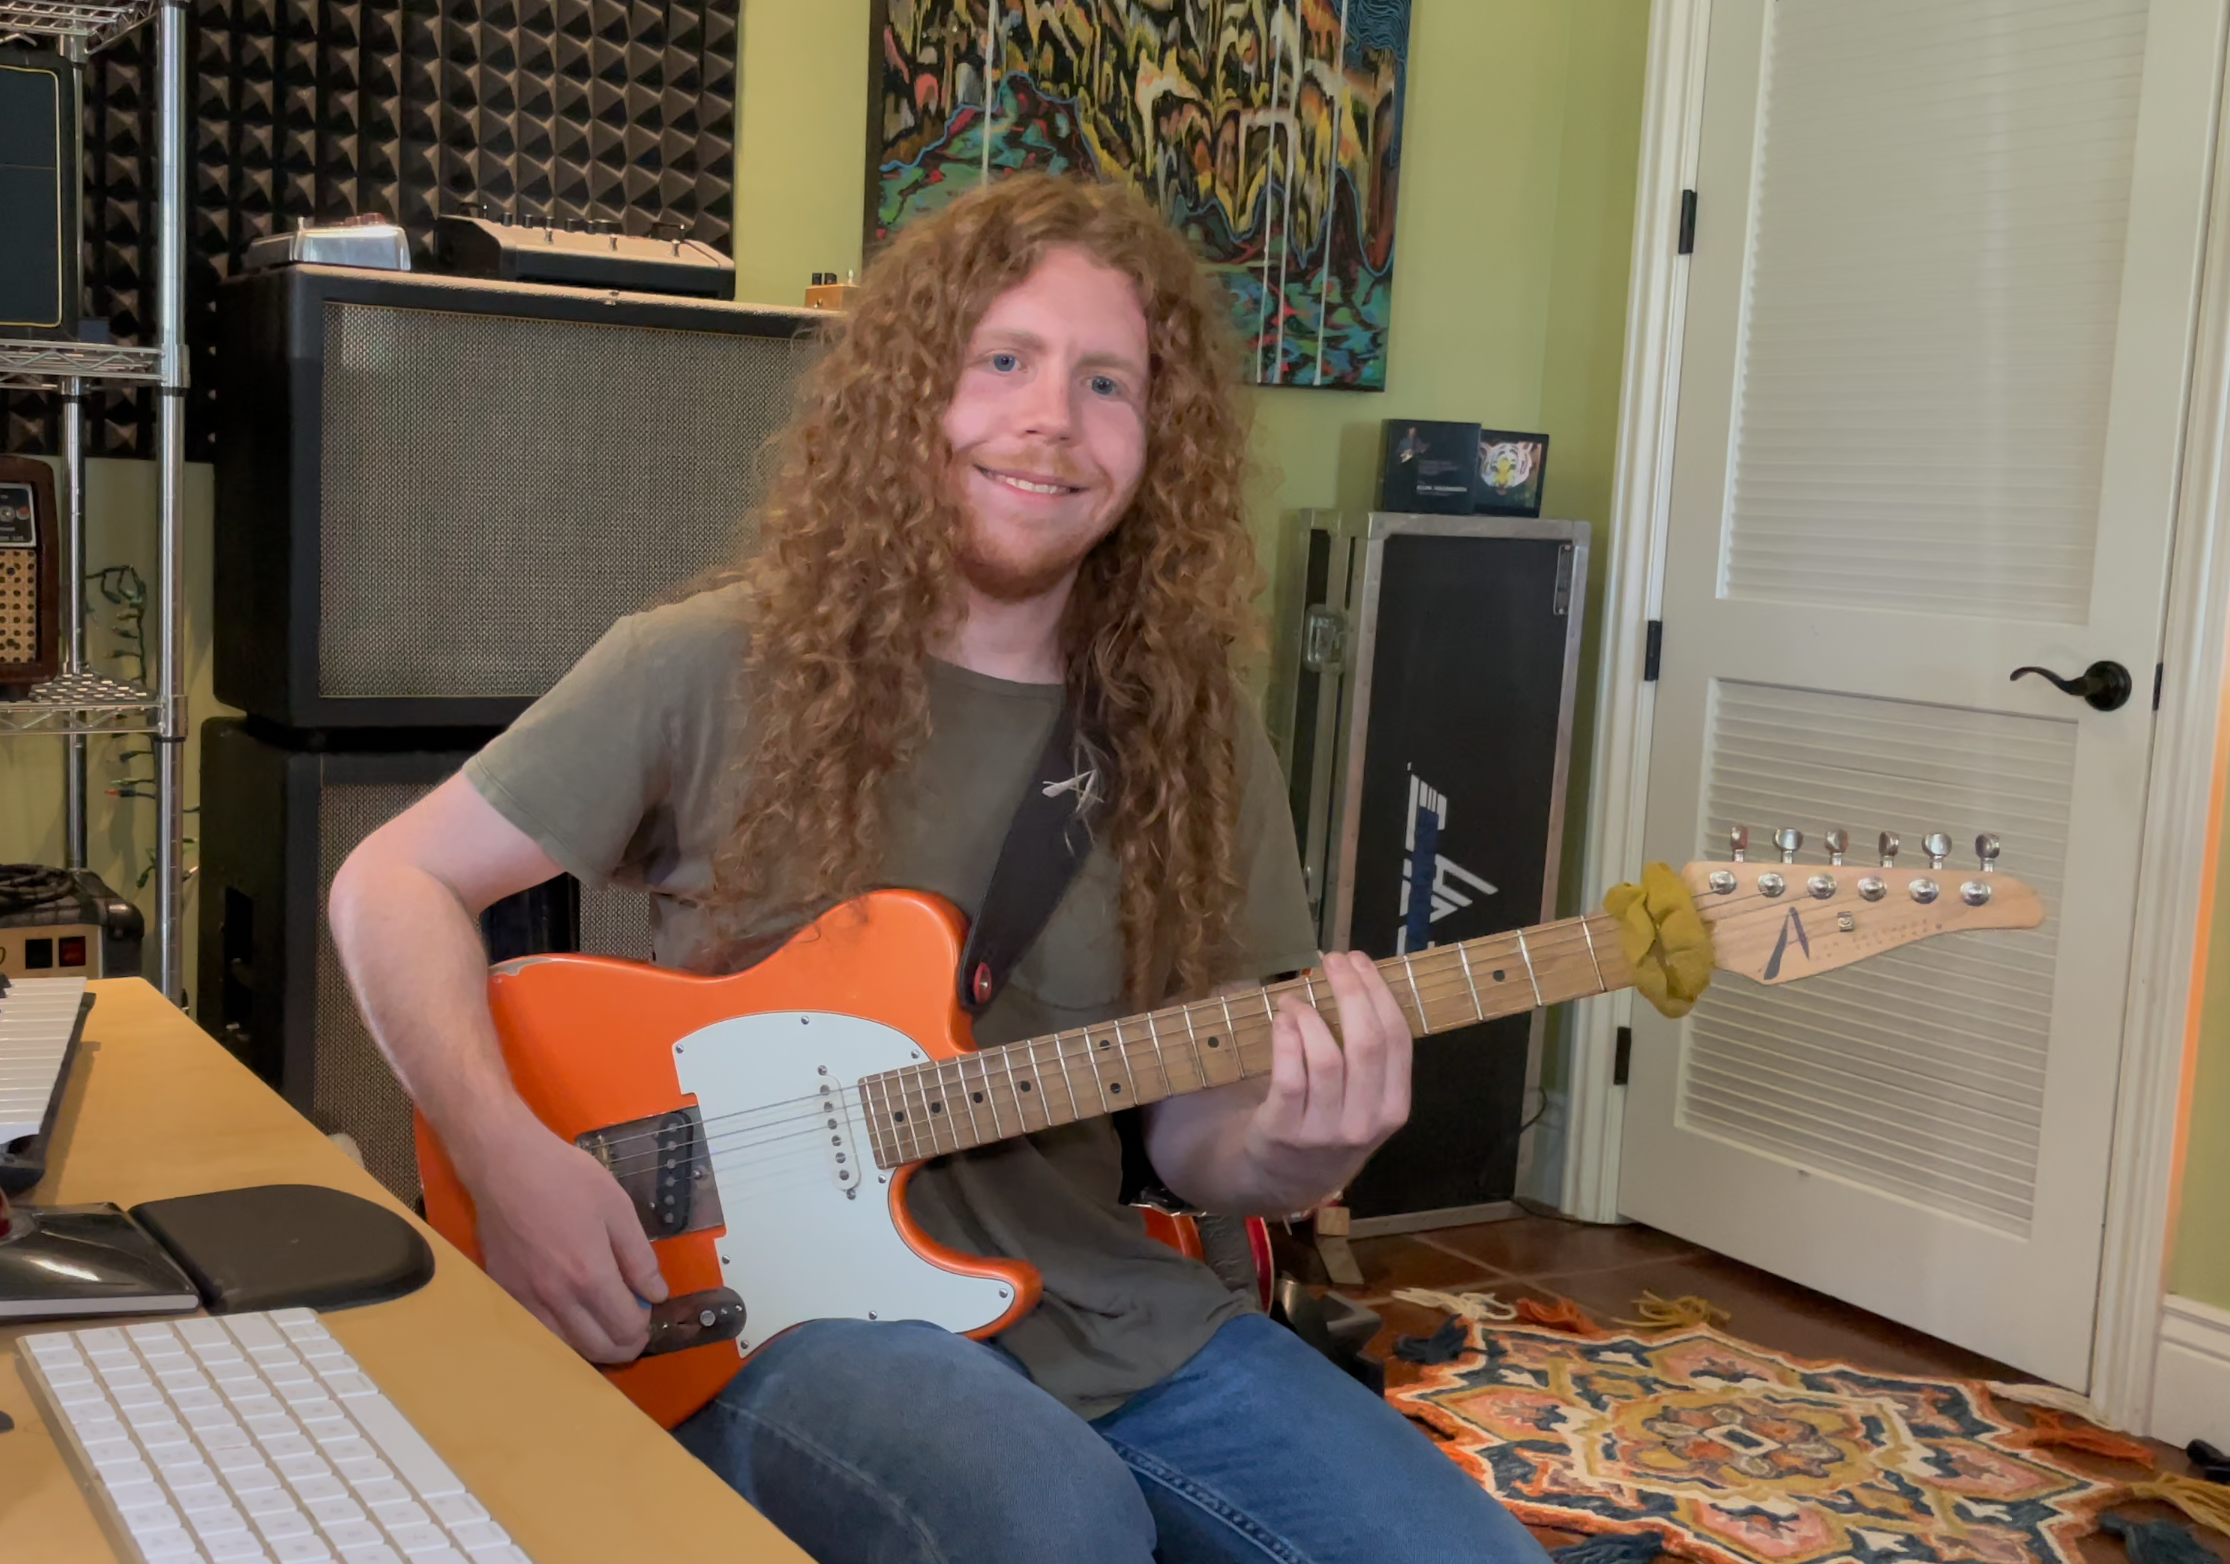 Sean Ashe guitar in hand interview with the talented musician